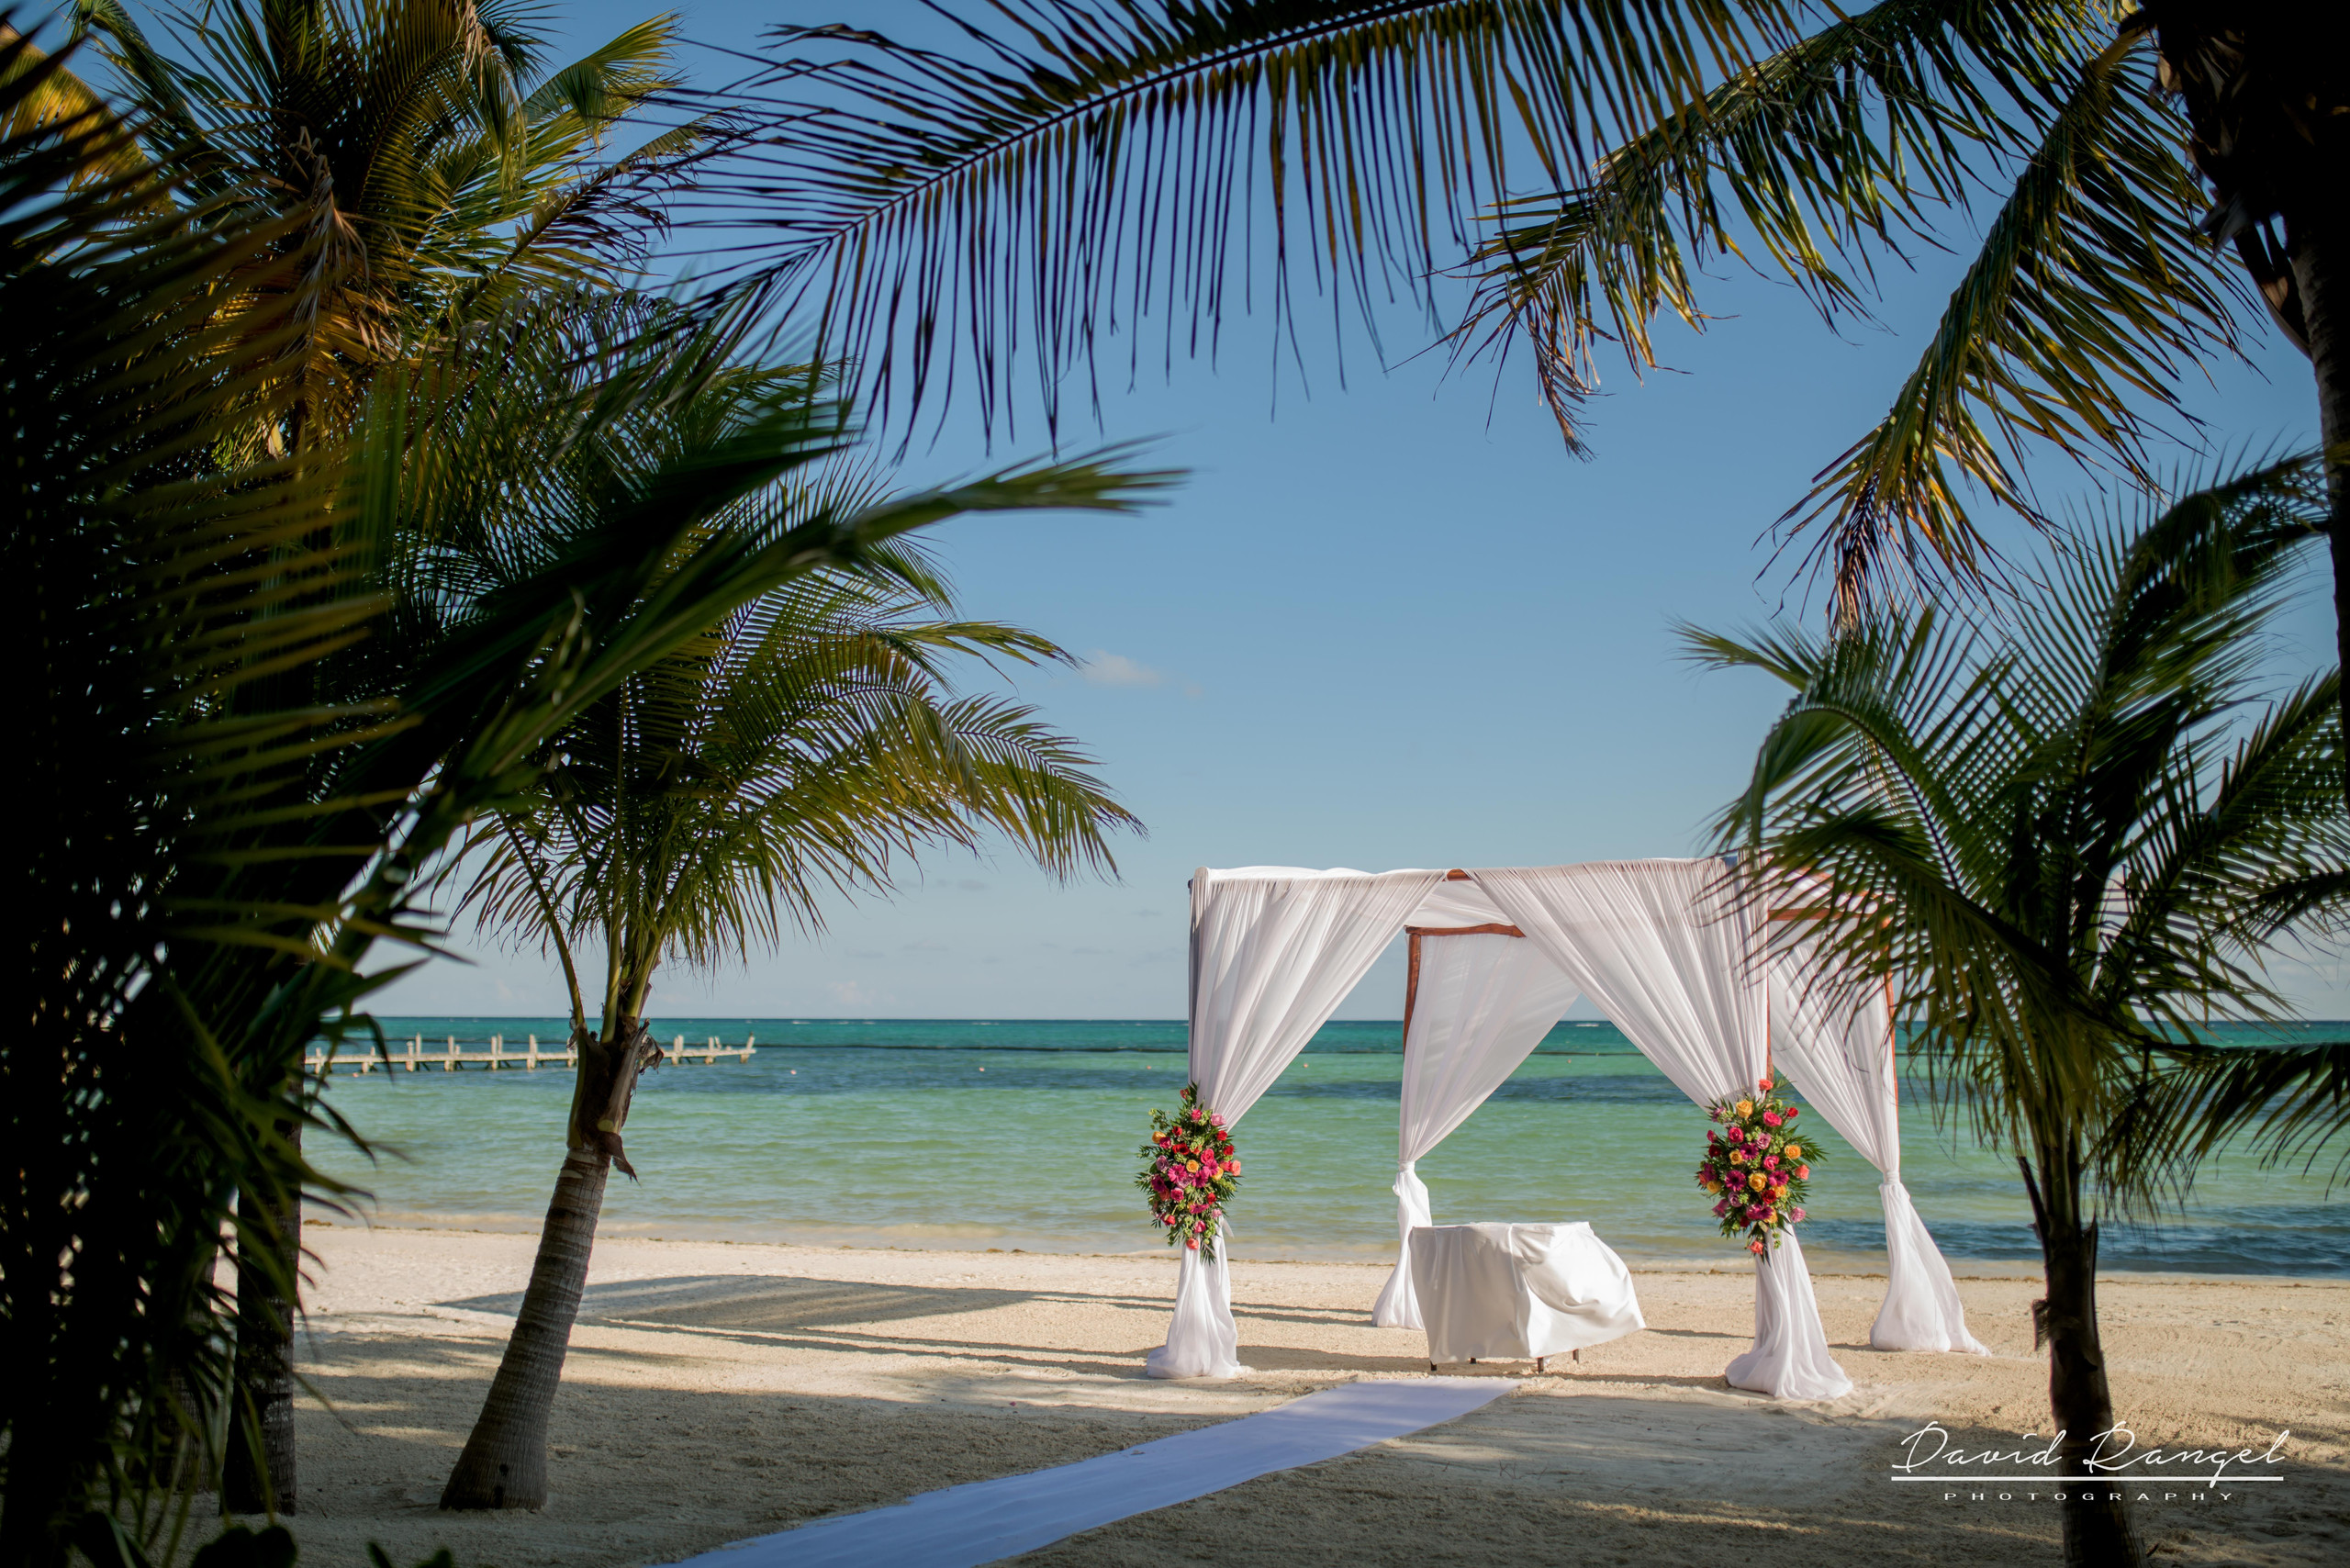 beach+wedding+gazebo+dorado+maroma